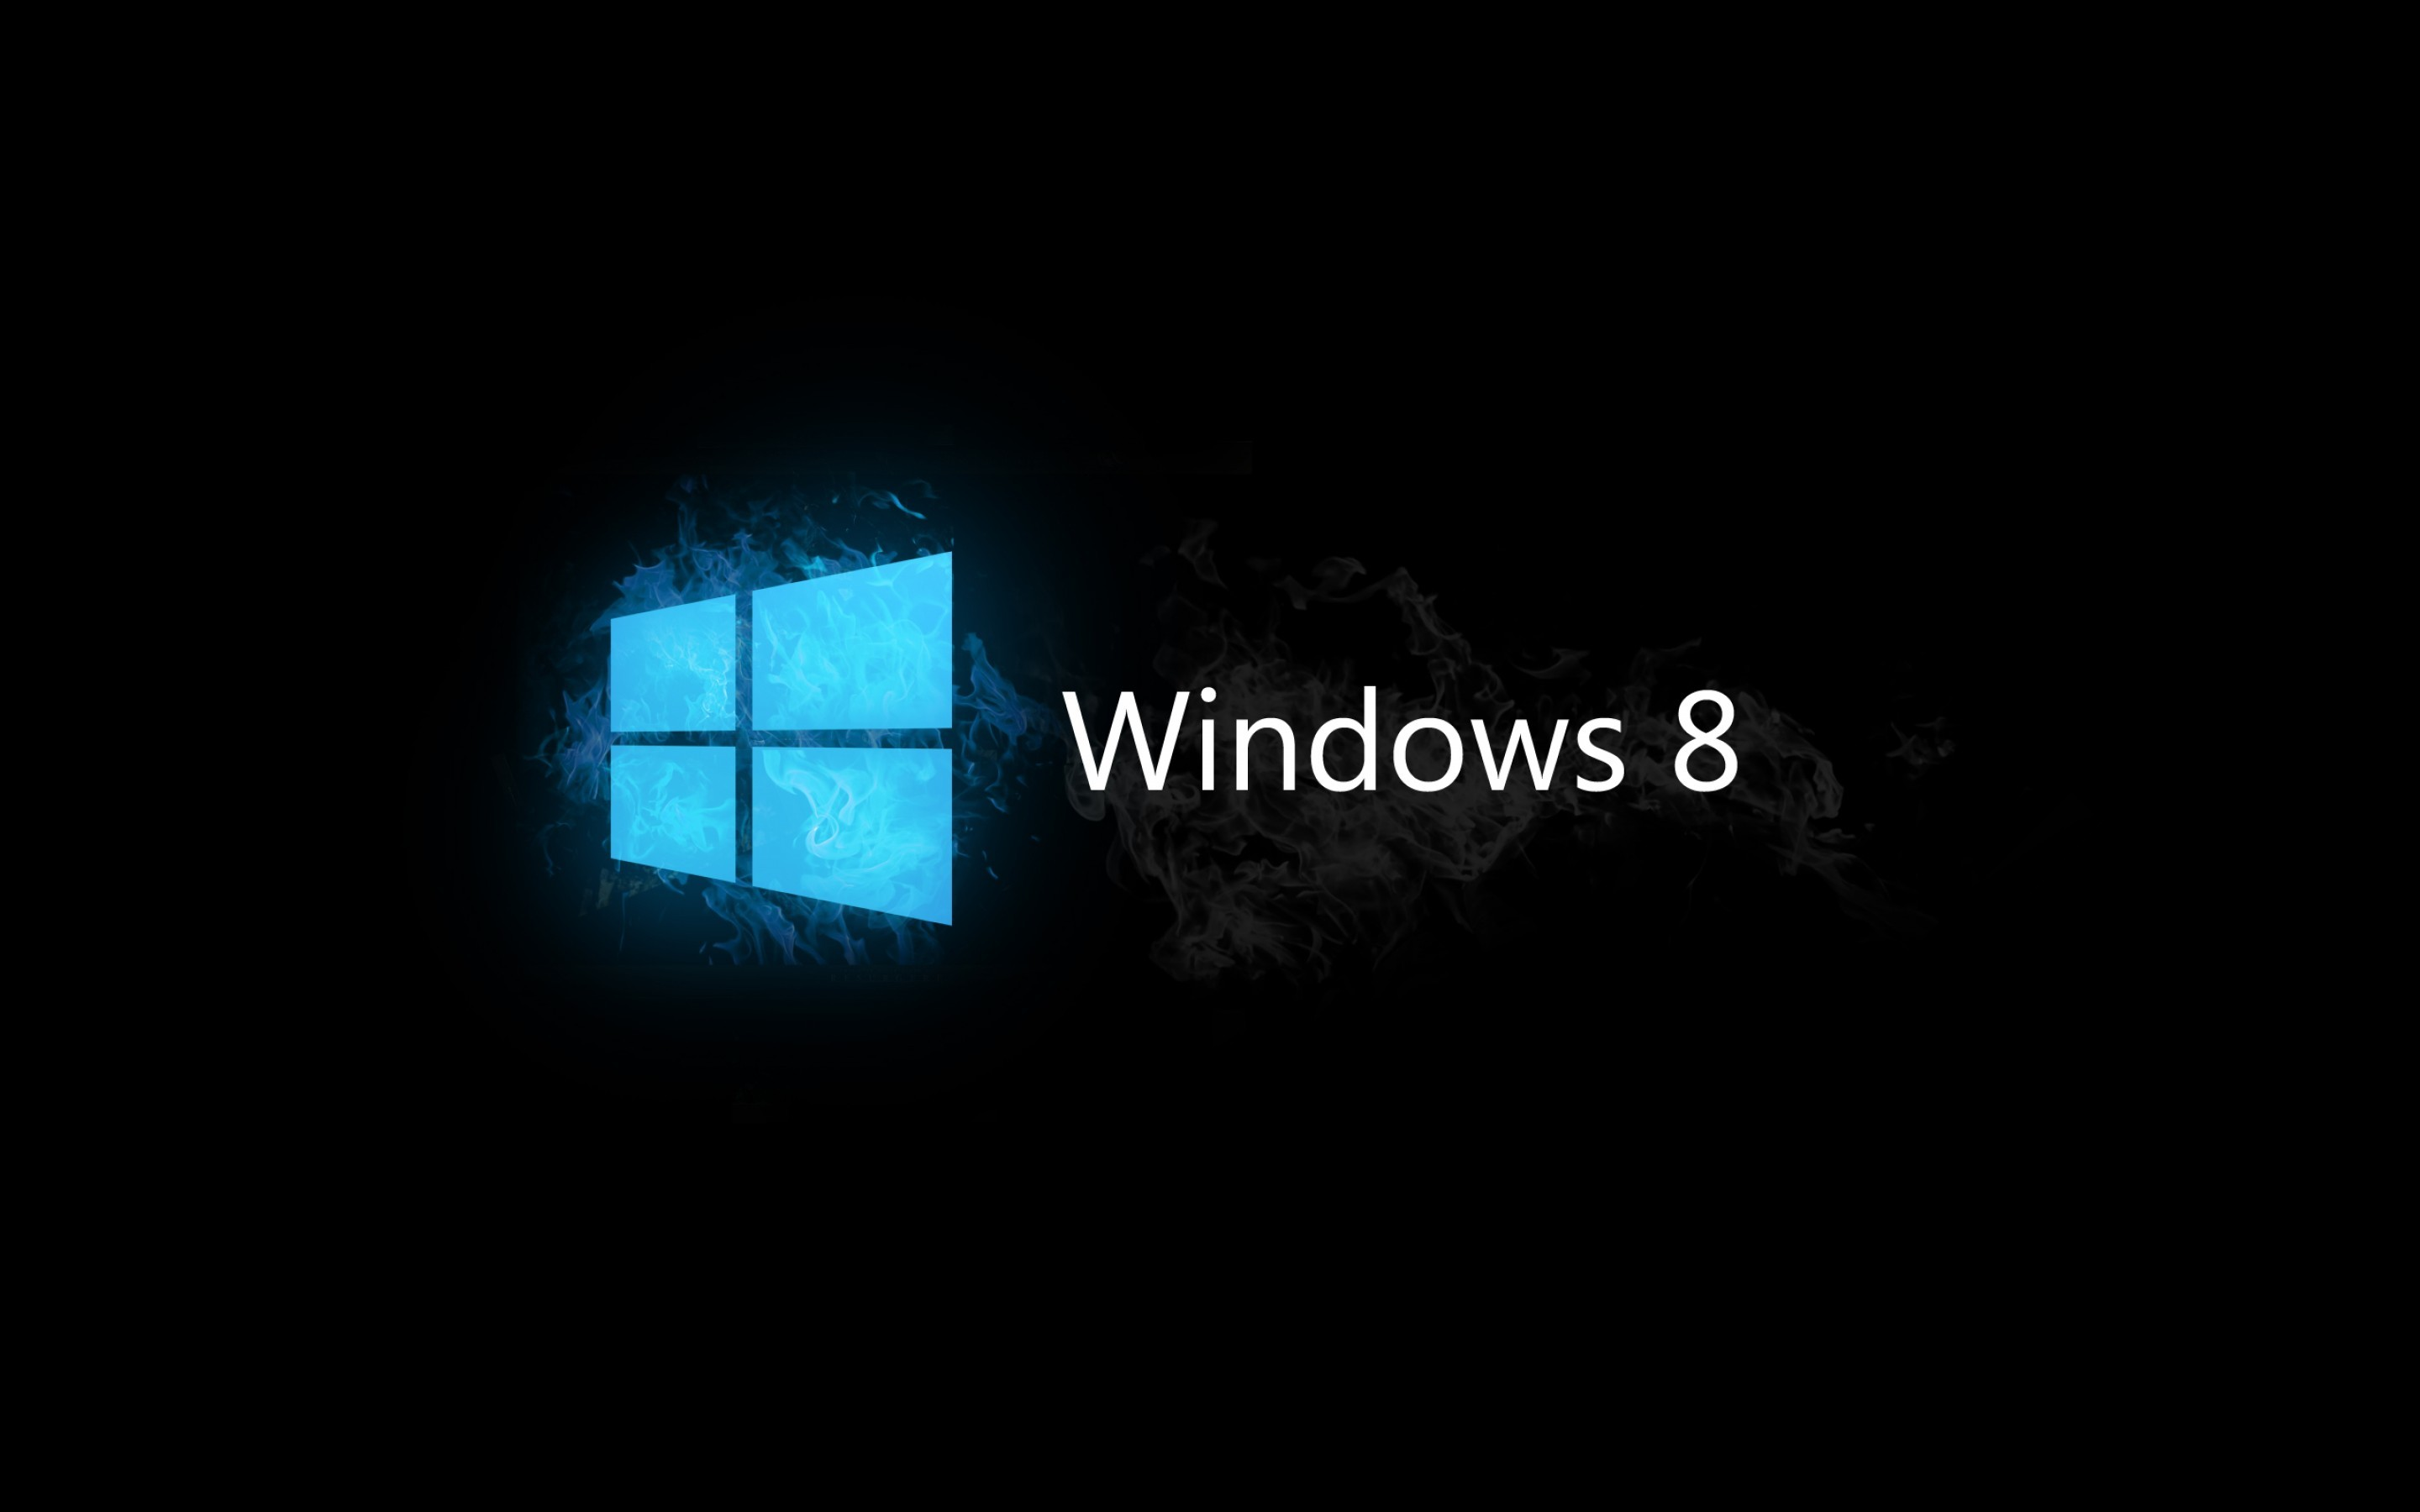 ZS 43 Windows 8 Wallpapers, Windows 8 Full HD Pictures and Wallpapers